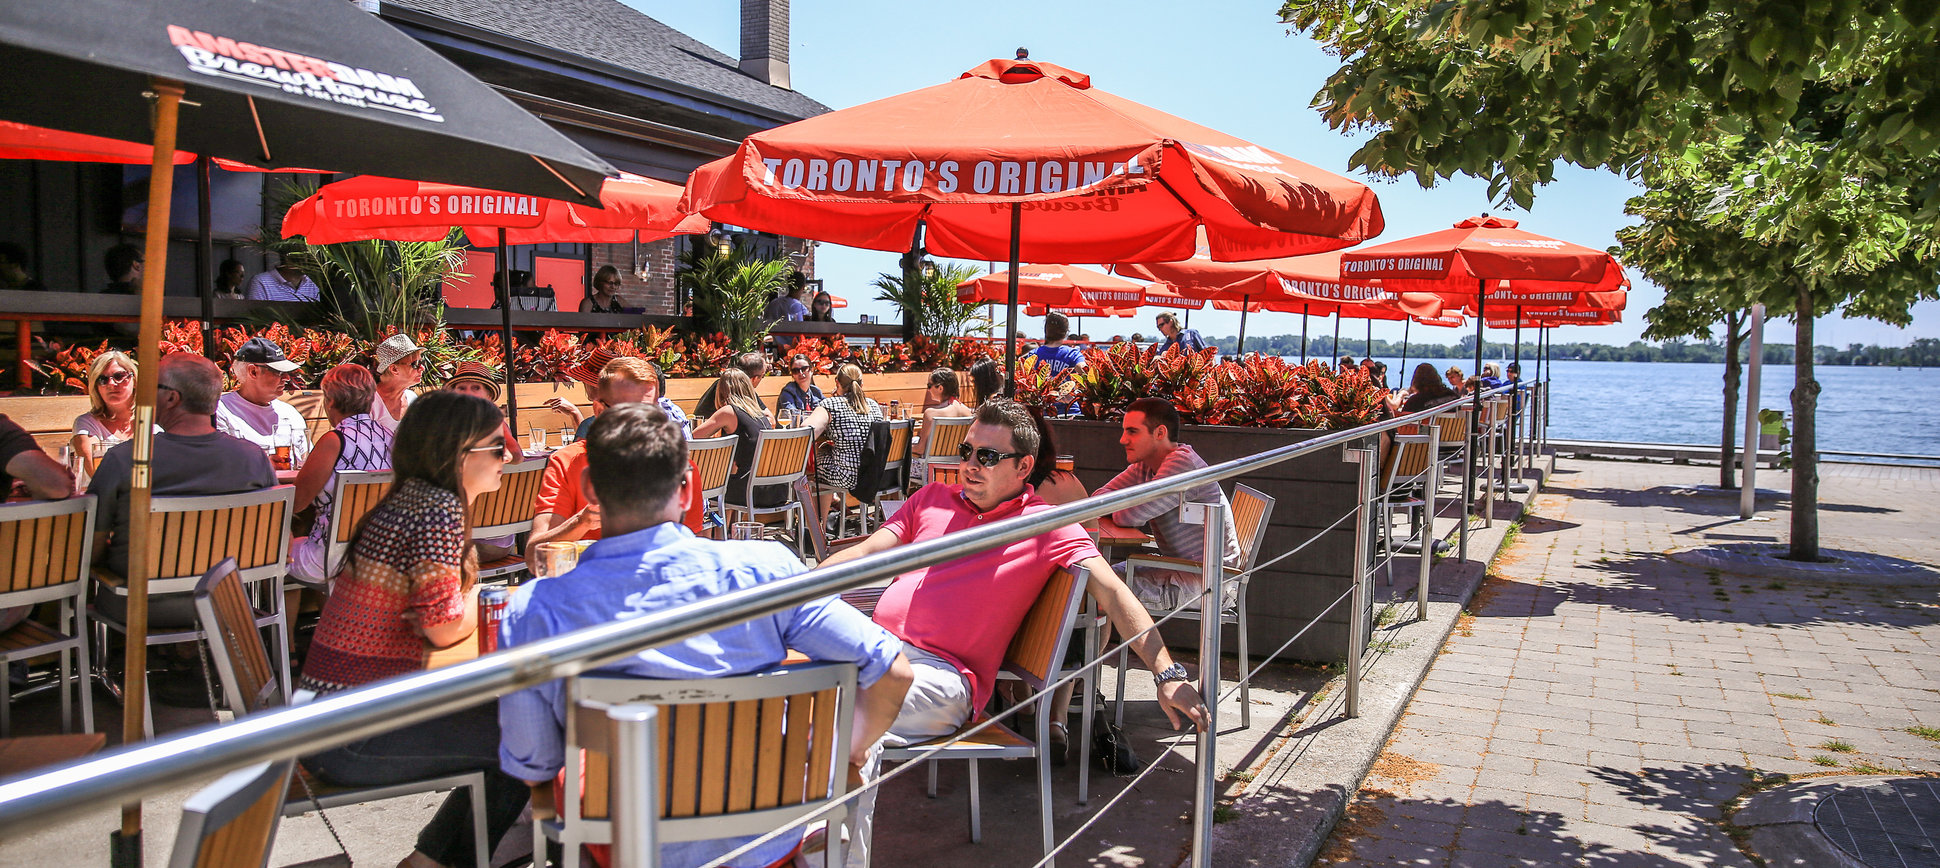 The Best Patios and Outdoor Bars in Toronto